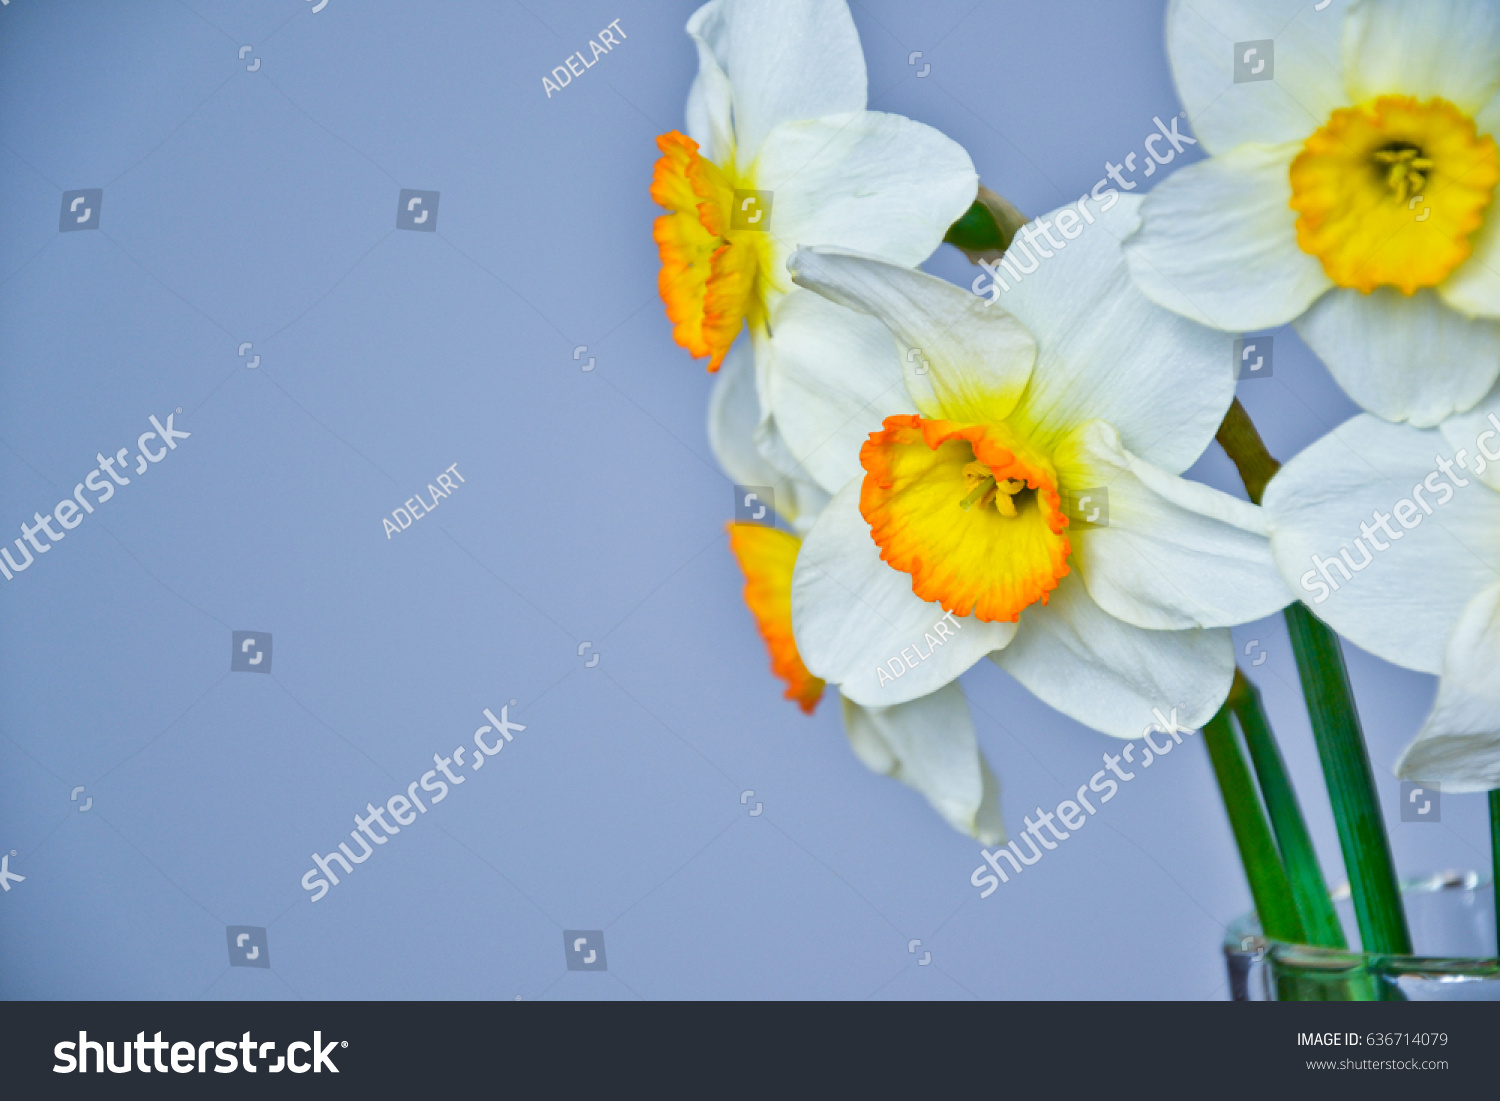 Daffodil Narcissus Spring Flowers White Yellow Stock Photo Royalty